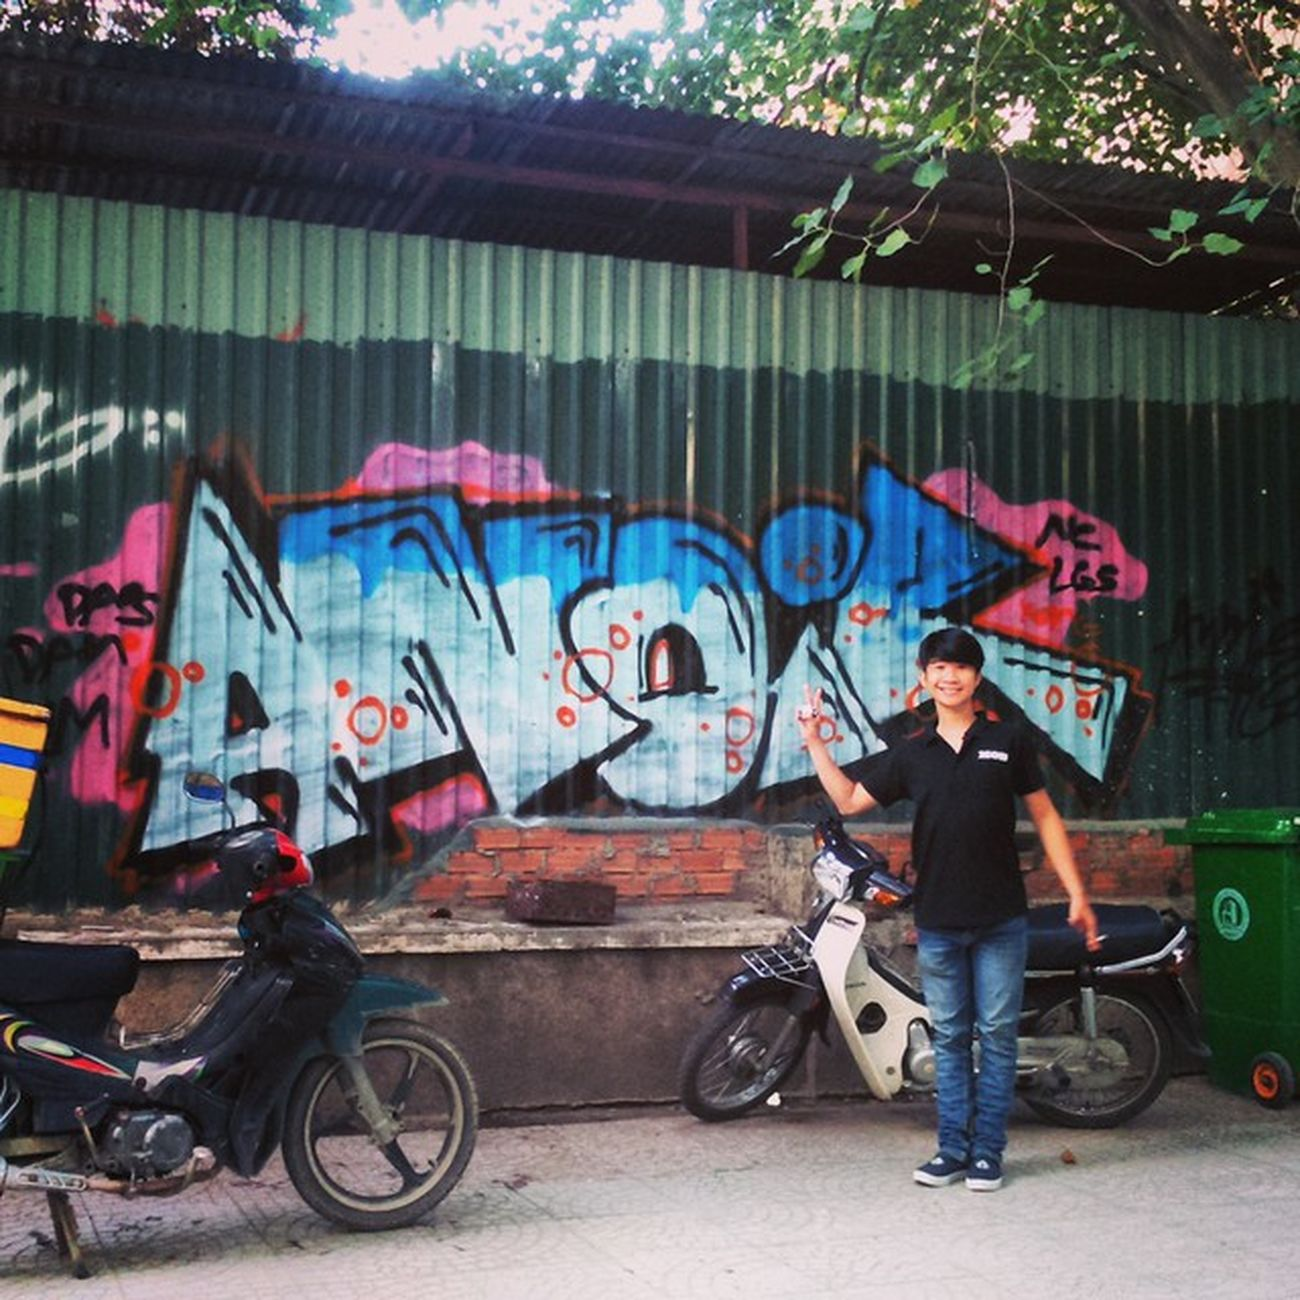 He was just there and automatically pose when i pointed to take a flick. Niceguy Funny NC Lazyguys graffitivietnam bombing anoir Saigon